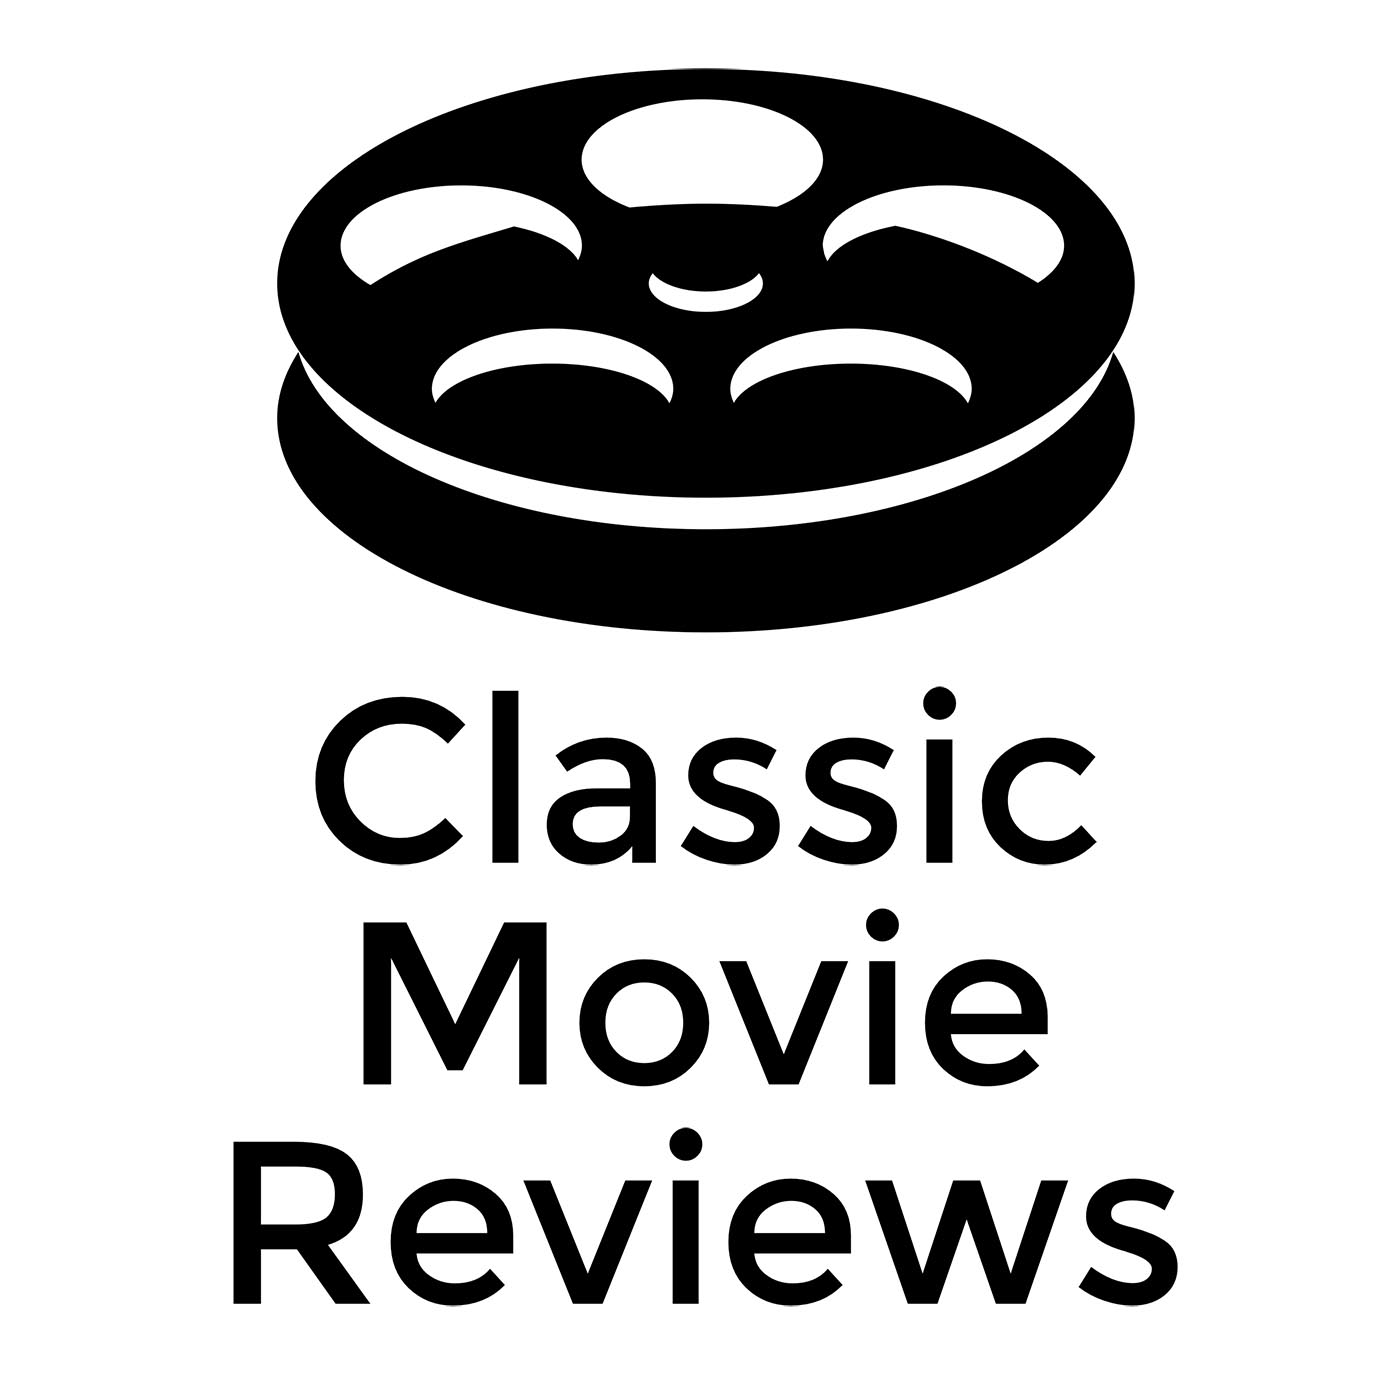 Review clipart movie review. Classic reviews podcast